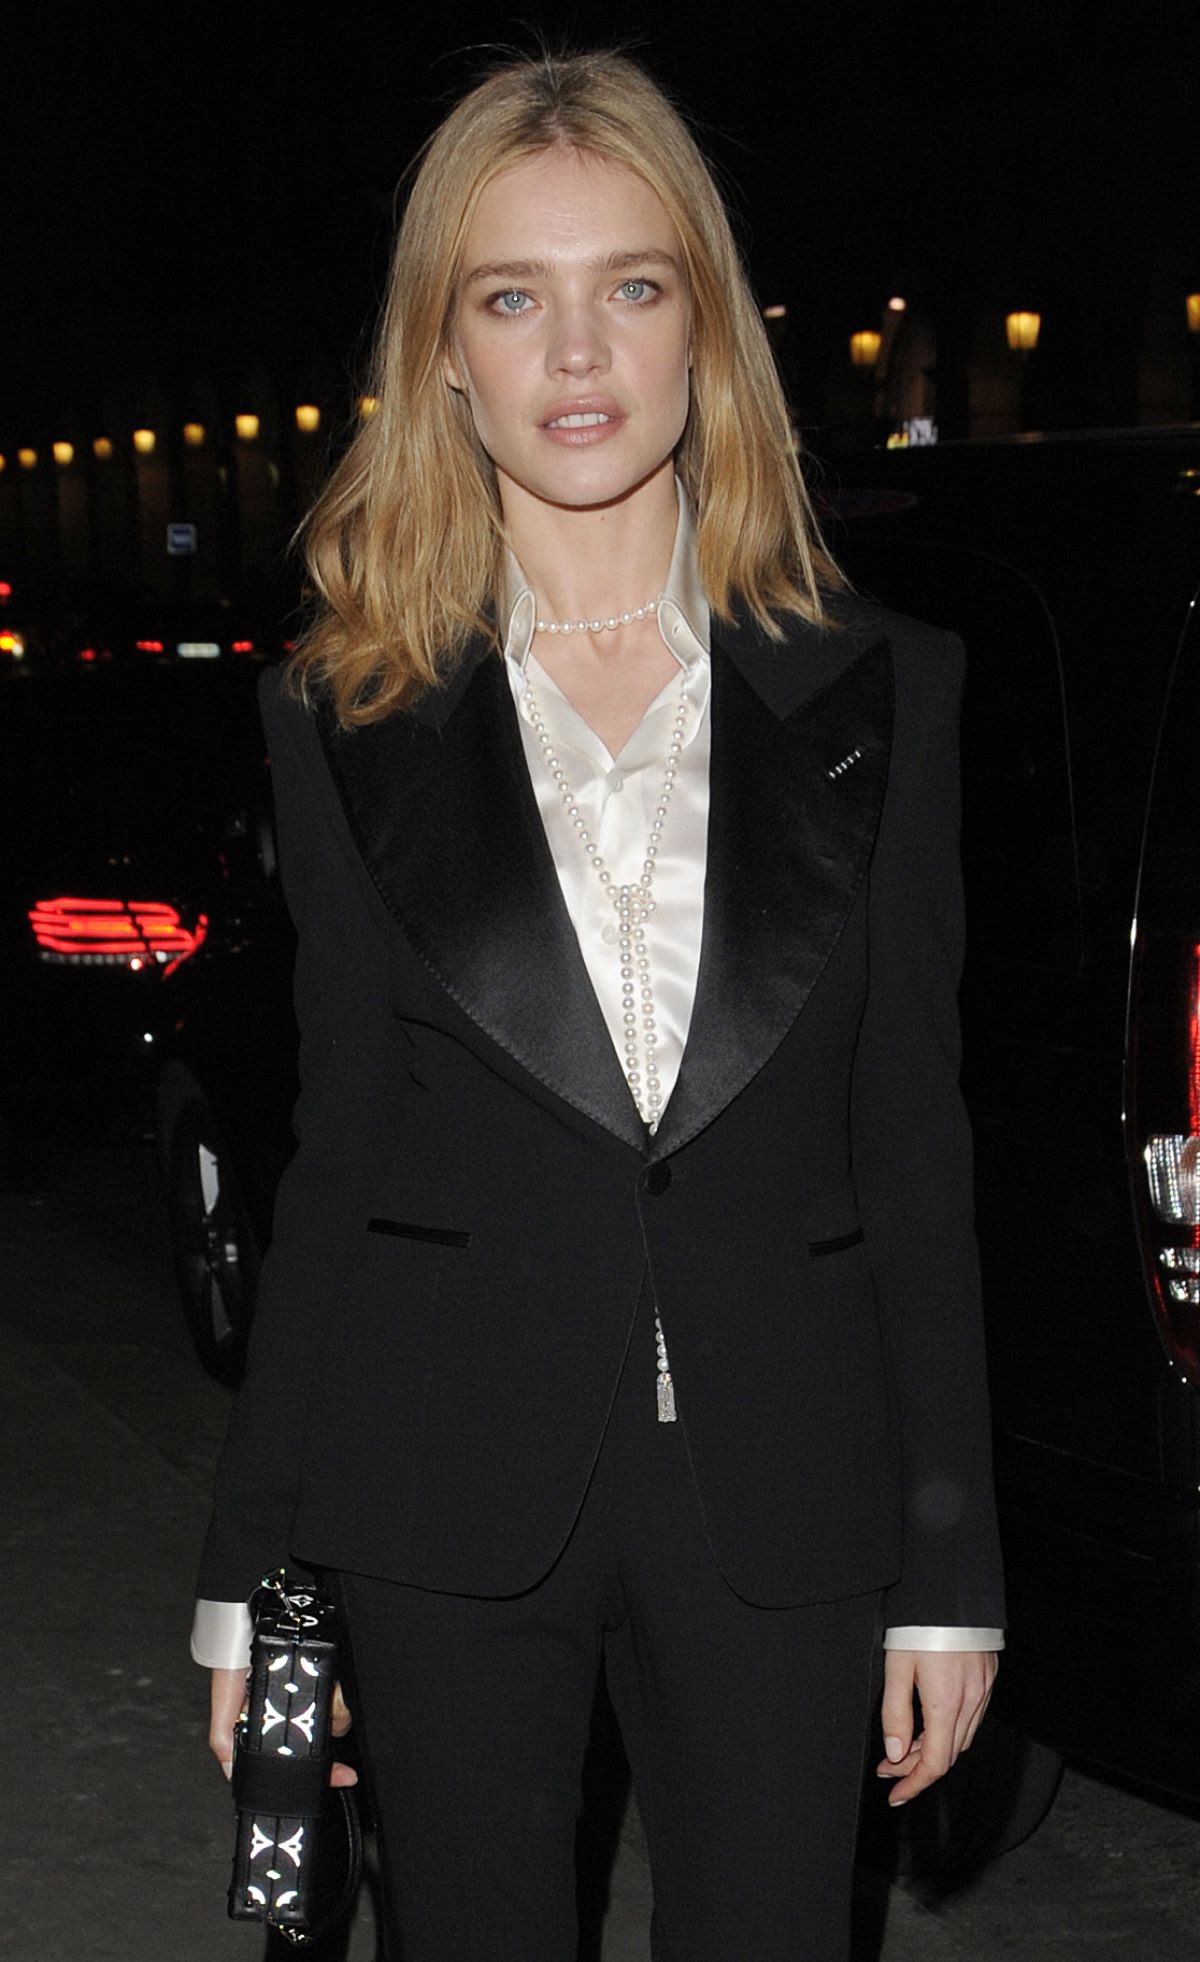 NATALIA VODIANOVA at Berluti Fashion Show in Paris